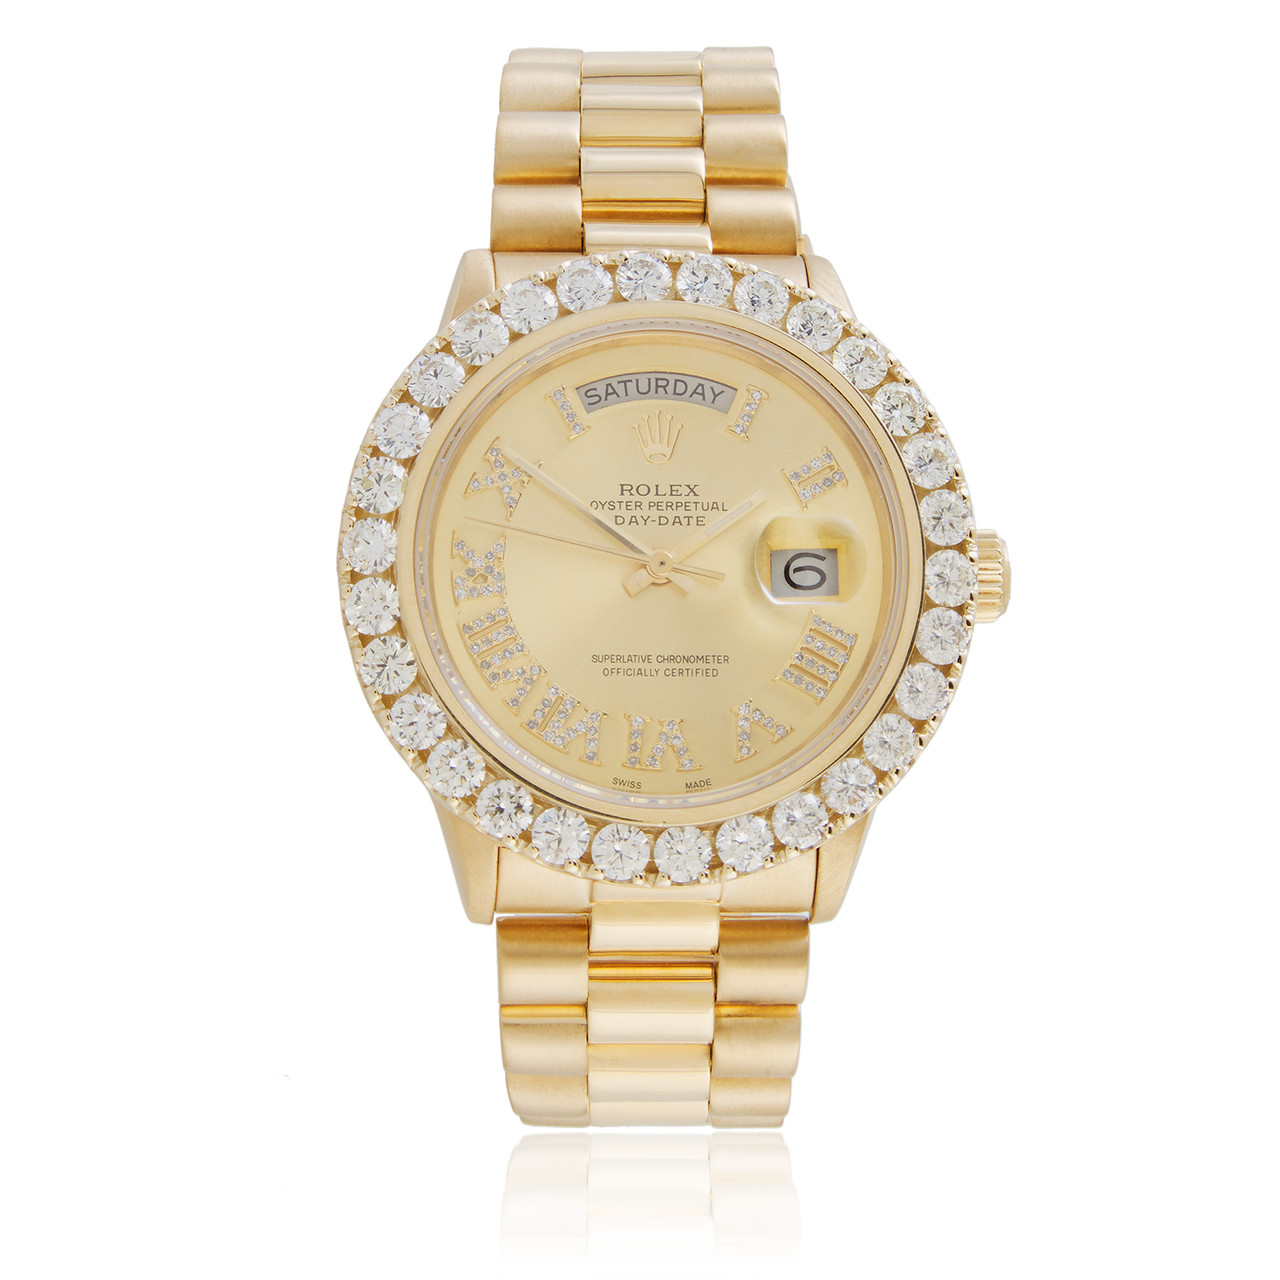 Rolex Day,Date 18k Yellow Gold President 6.5ct Diamond Bezel Automatic  Men\u0027s Watch